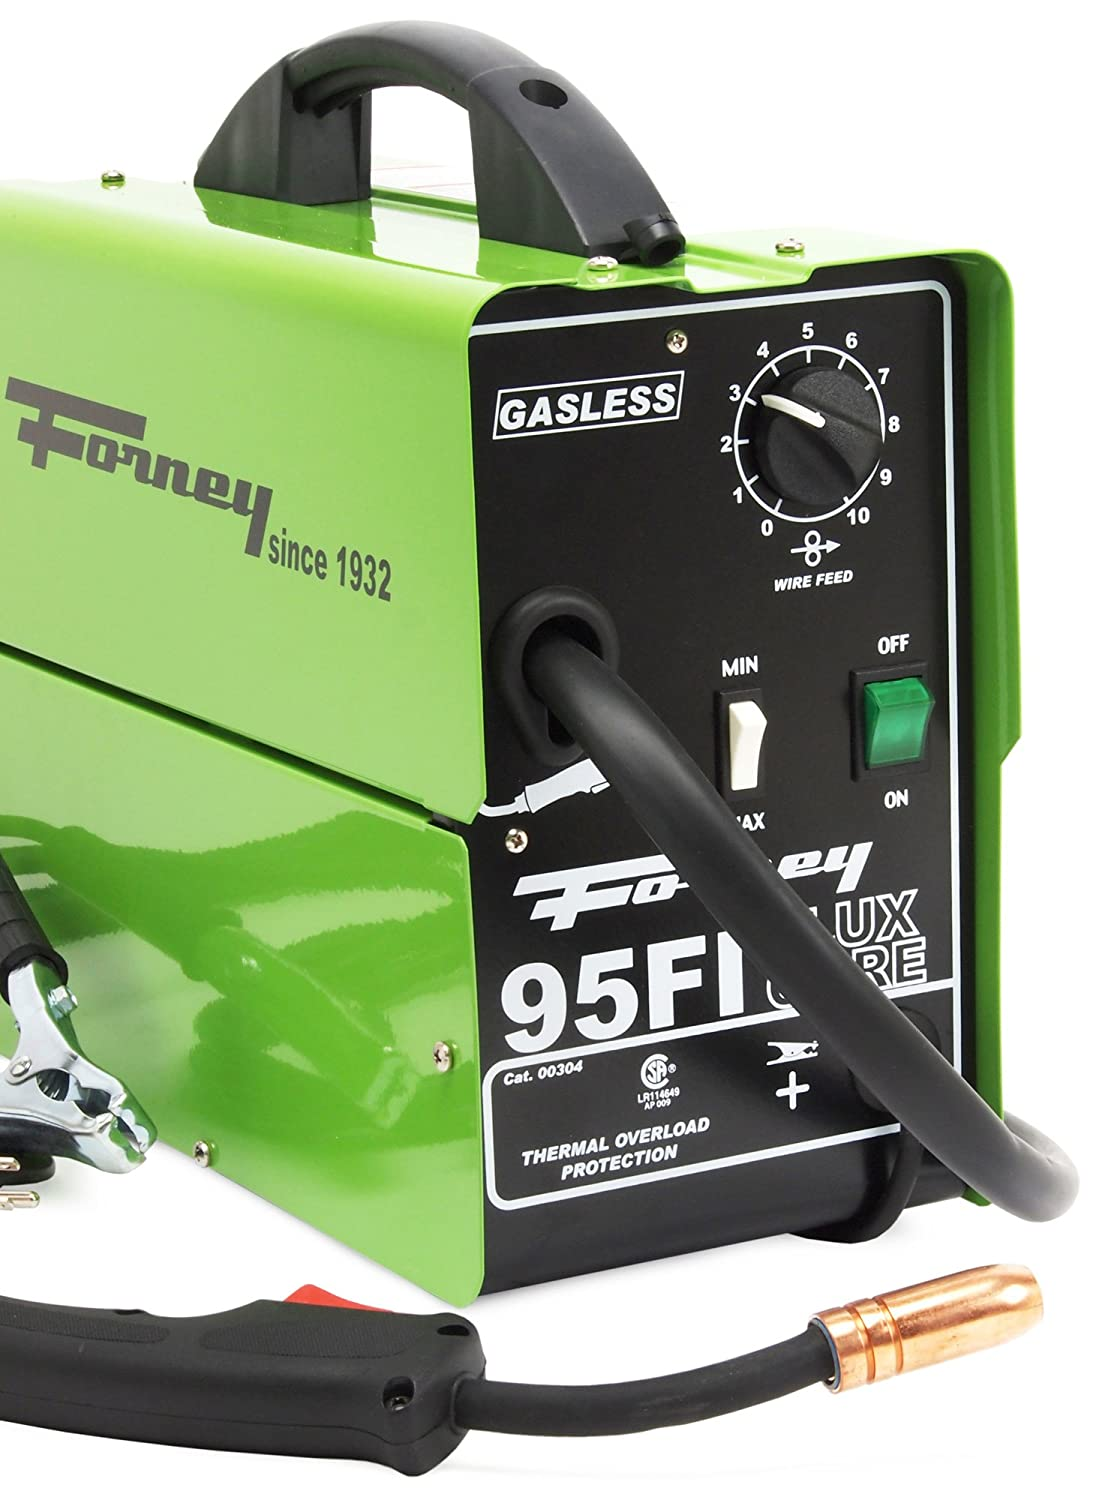 Forney 95 FI 120V FLUX CORE WELDER - Gas Welding Equipment - Amazon.com